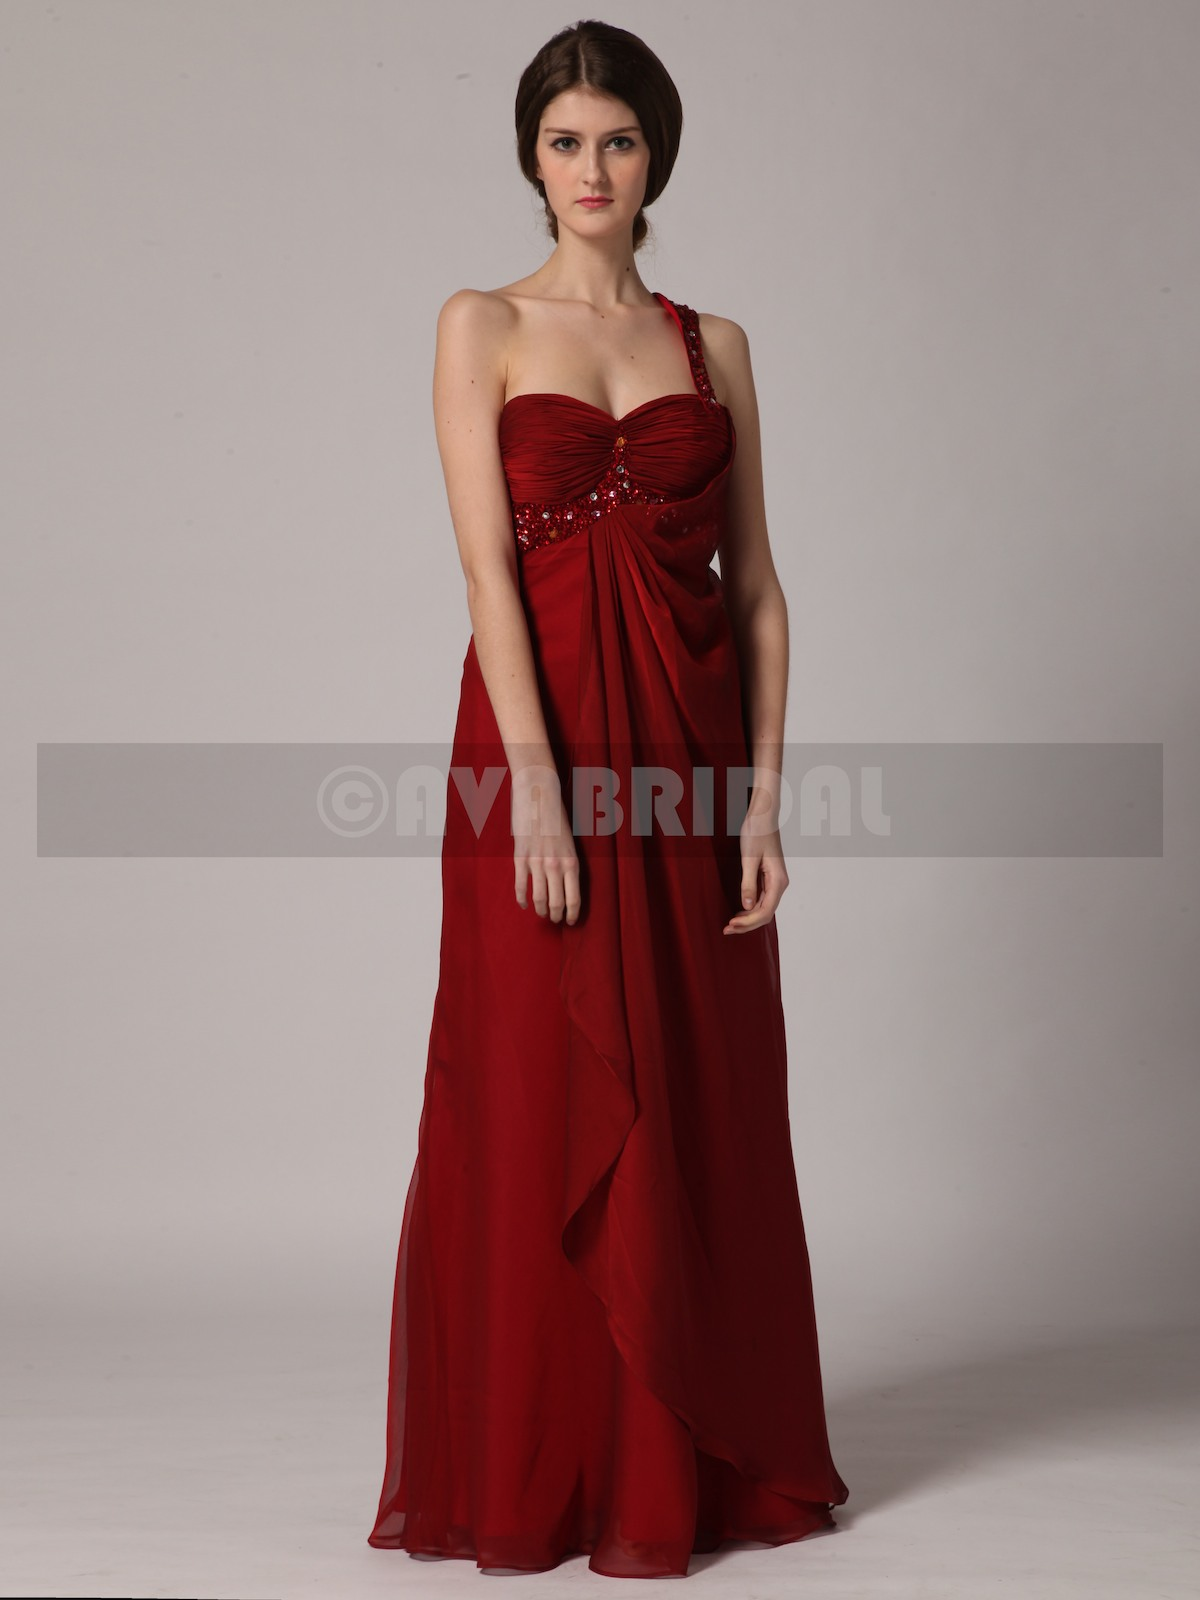 Chic Asymmetric Empire Waist Satin Chiffon Bridesmaid Dress B436-front